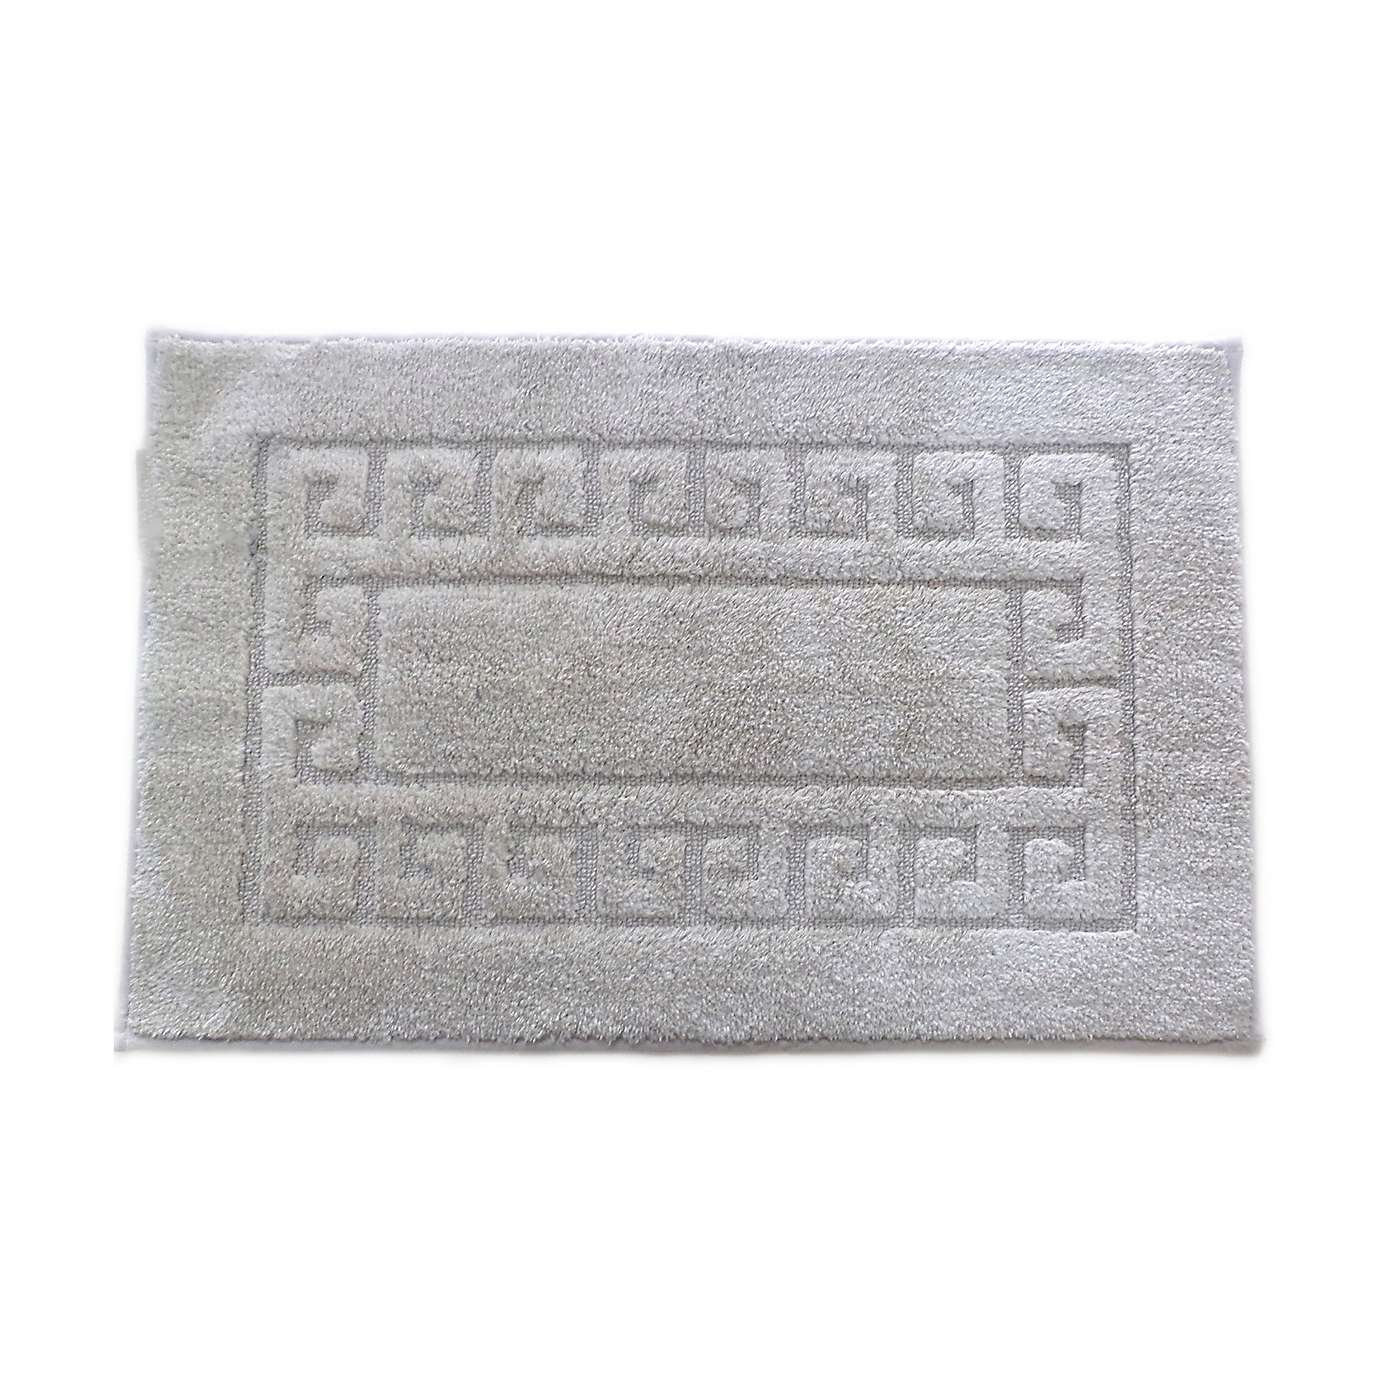 wondrous gray bath mat with non slip cotton